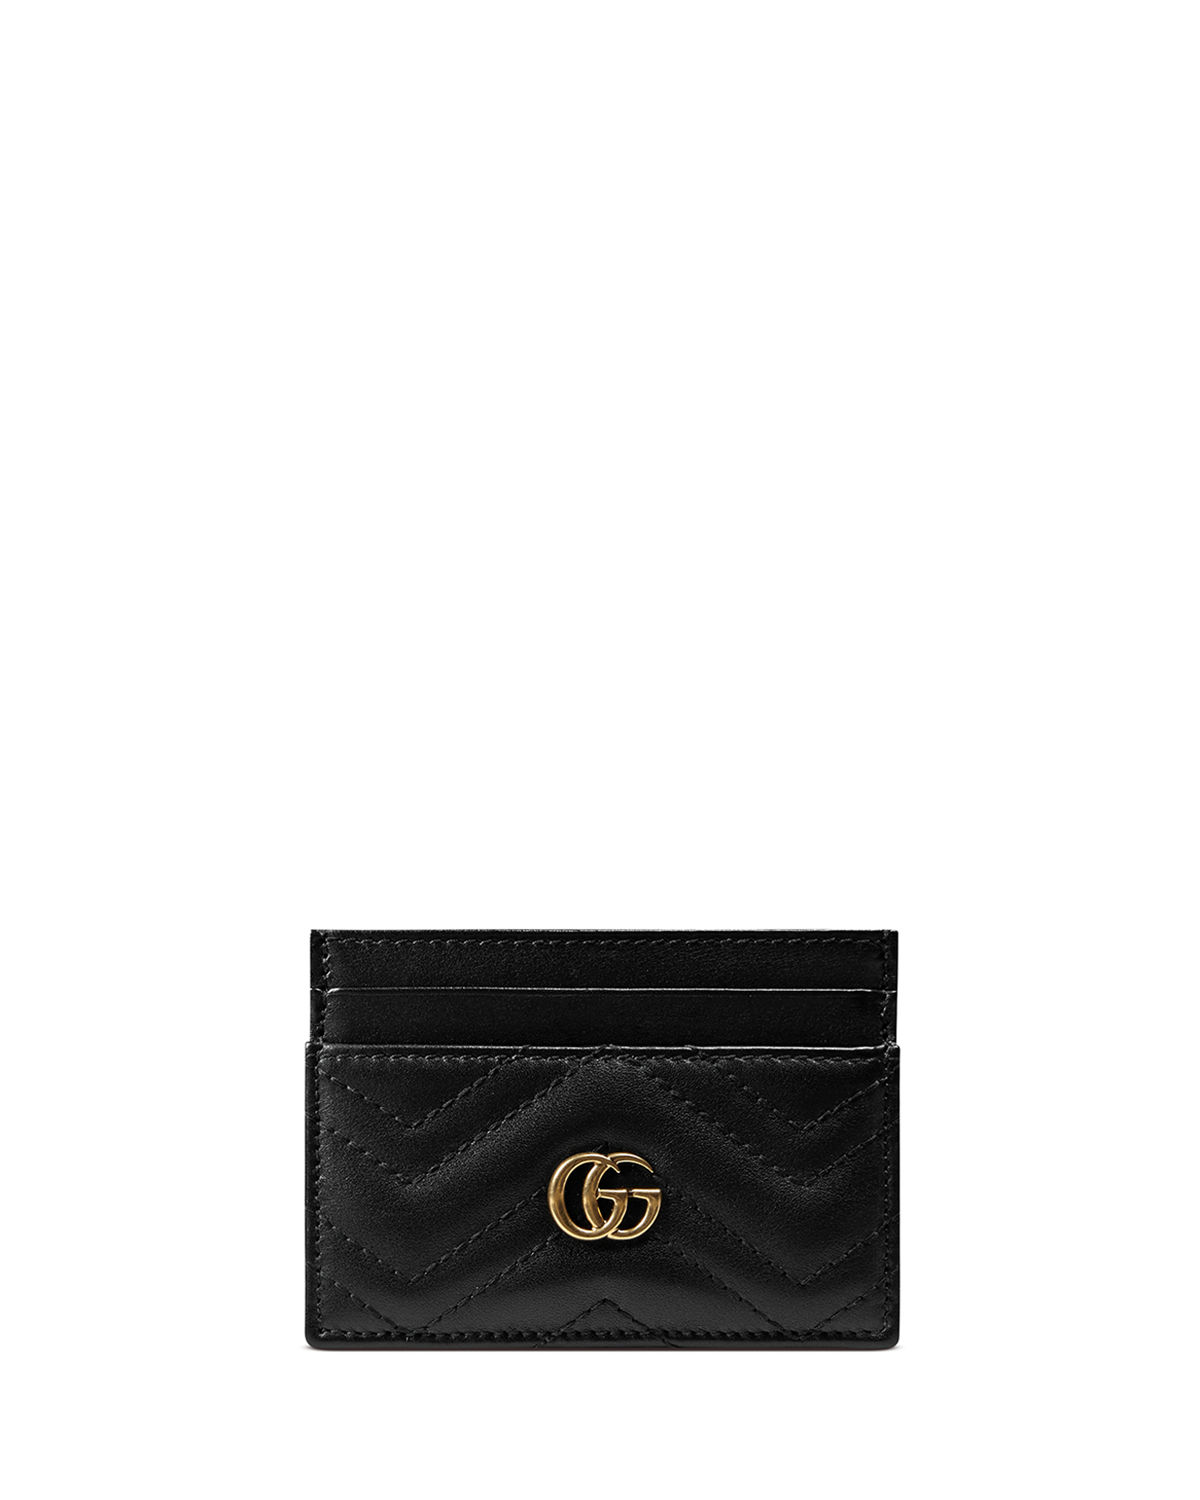 0bb19045434 Gucci GG Marmont Matelasse Card Case